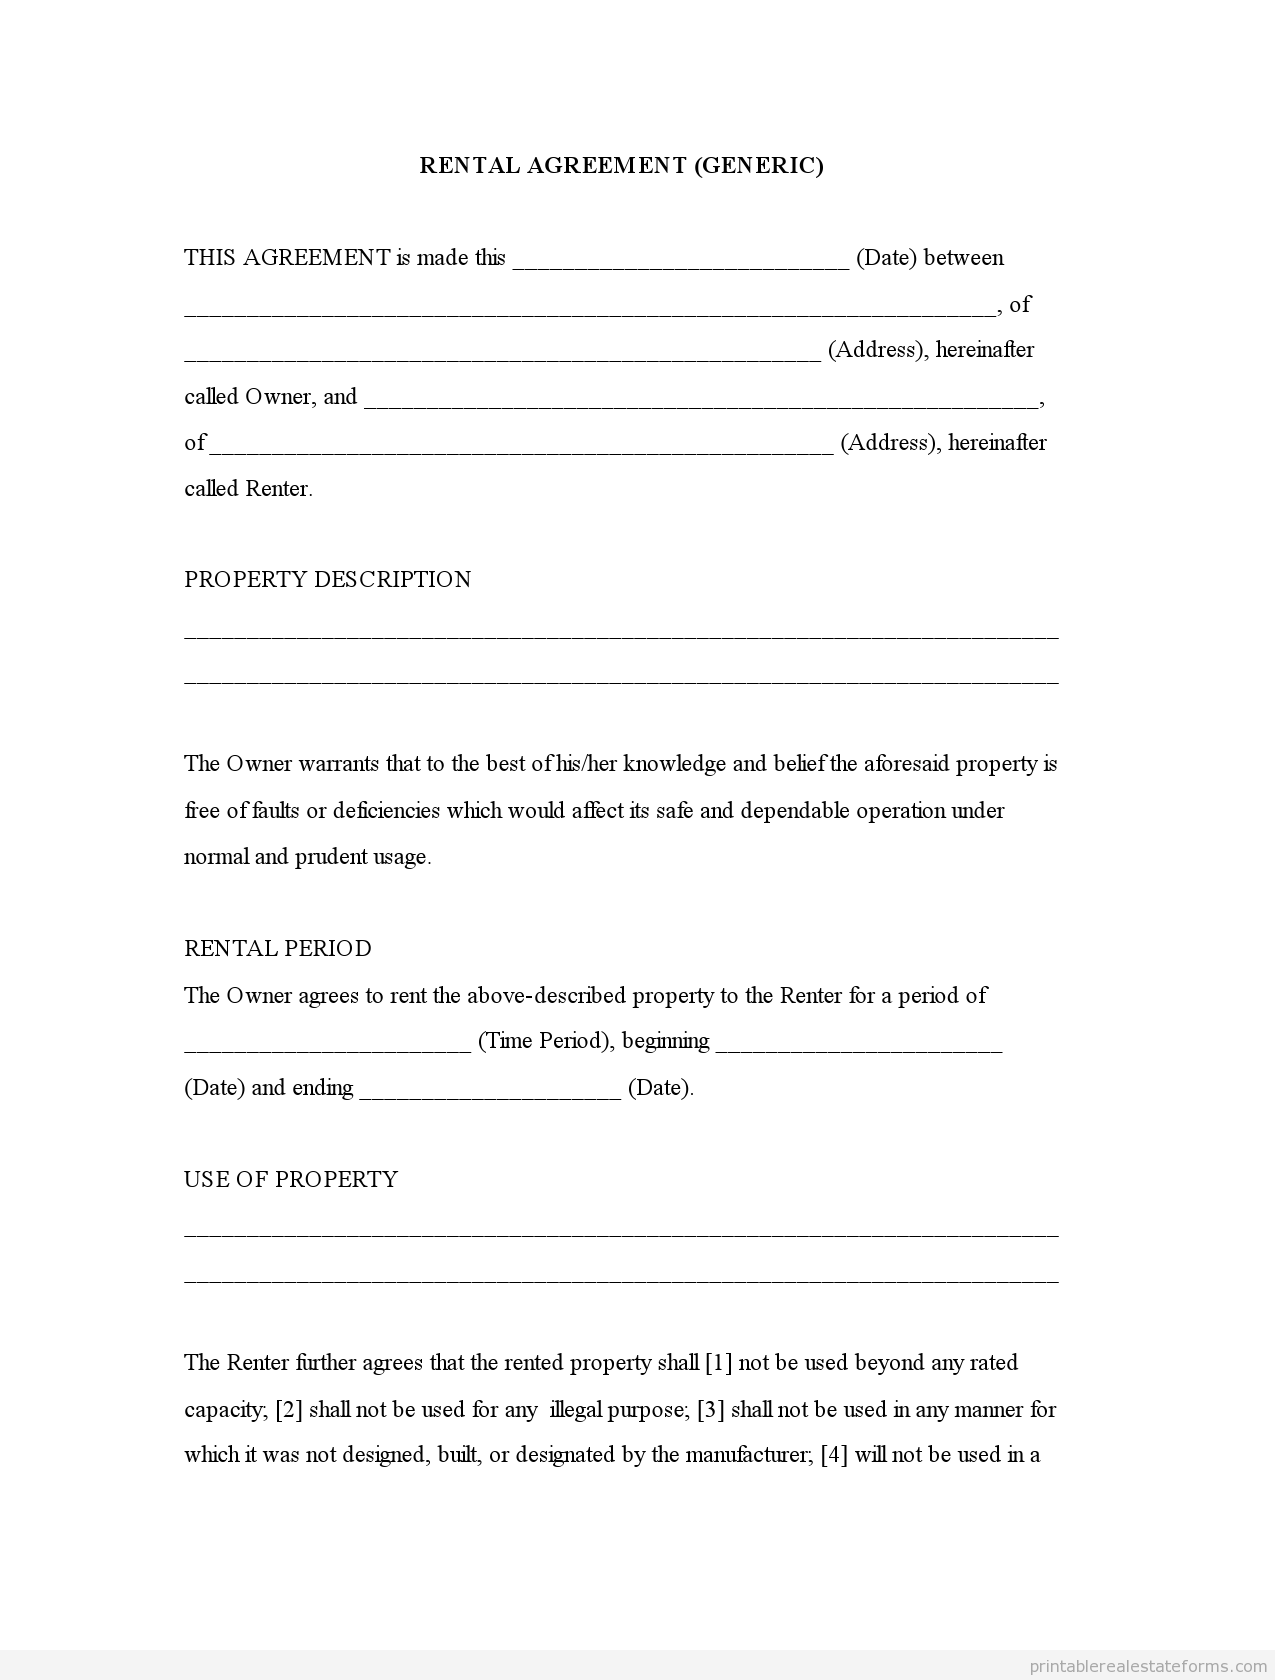 Get High Quality Rental Agreement Forms Free Printable.Free Lease Agreement  Forms To Print.Print Out Form.  Printable Rental Agreement Form Free